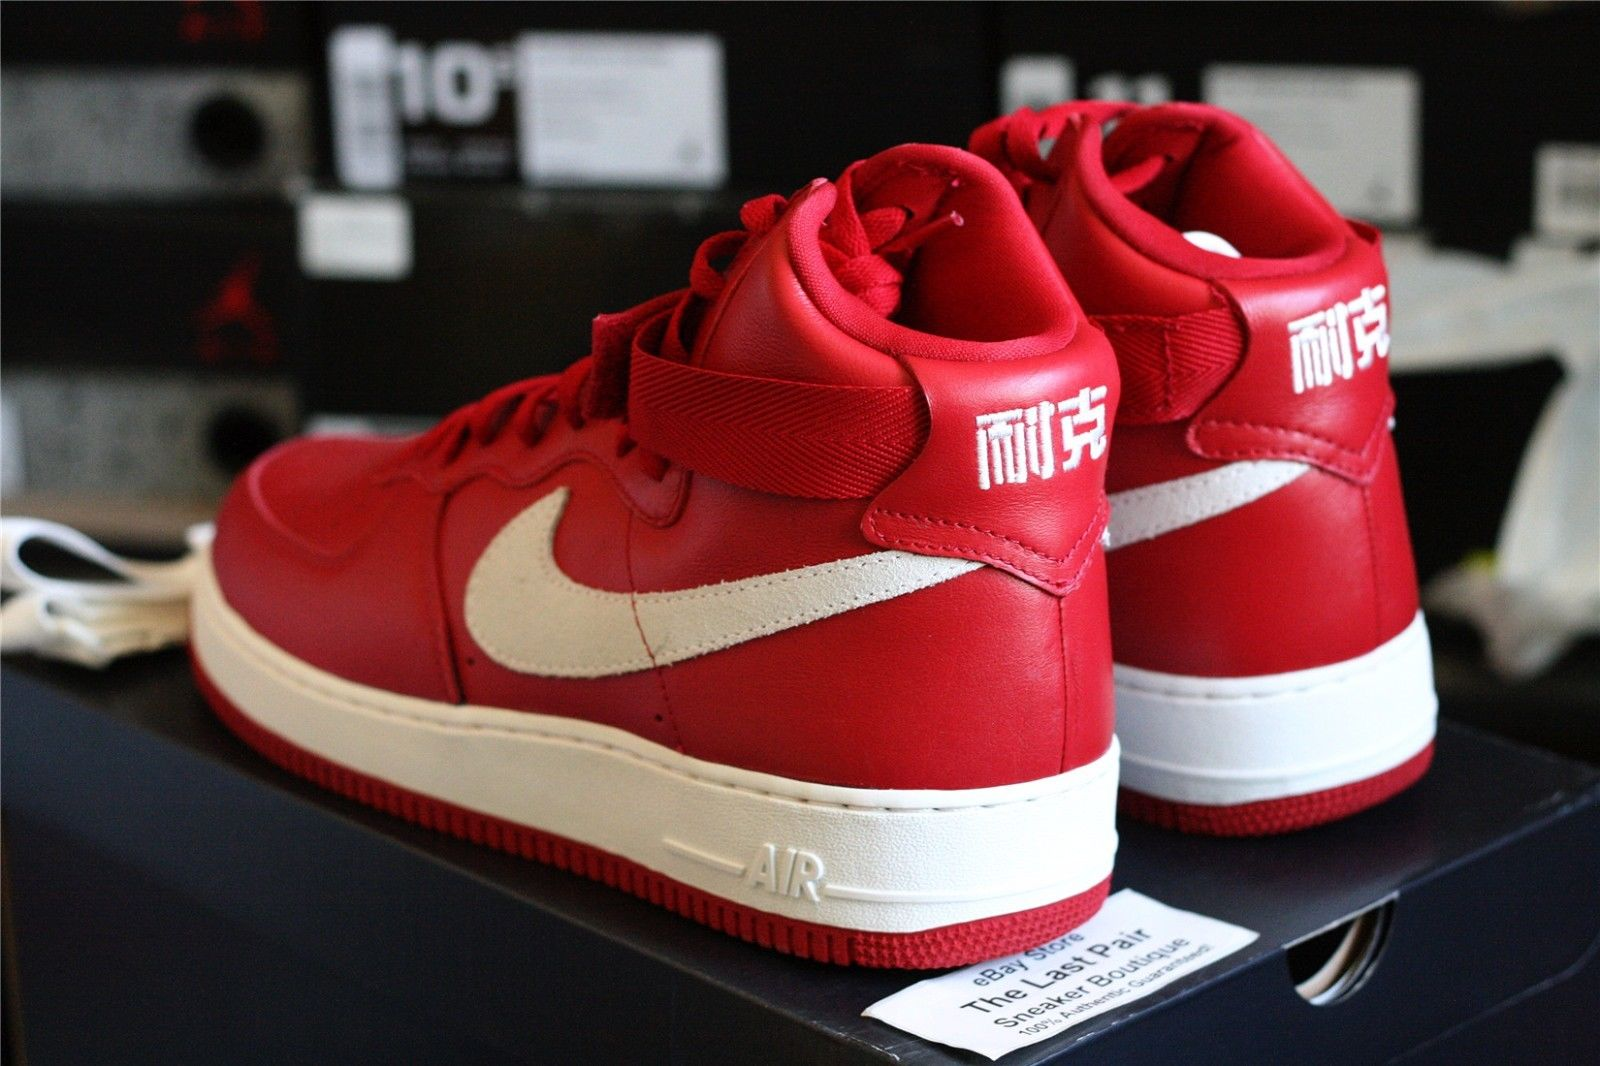 innovative design 08423 dd198 These Nike Air Force 1s Finally Released in the U.S.   Sole Collector